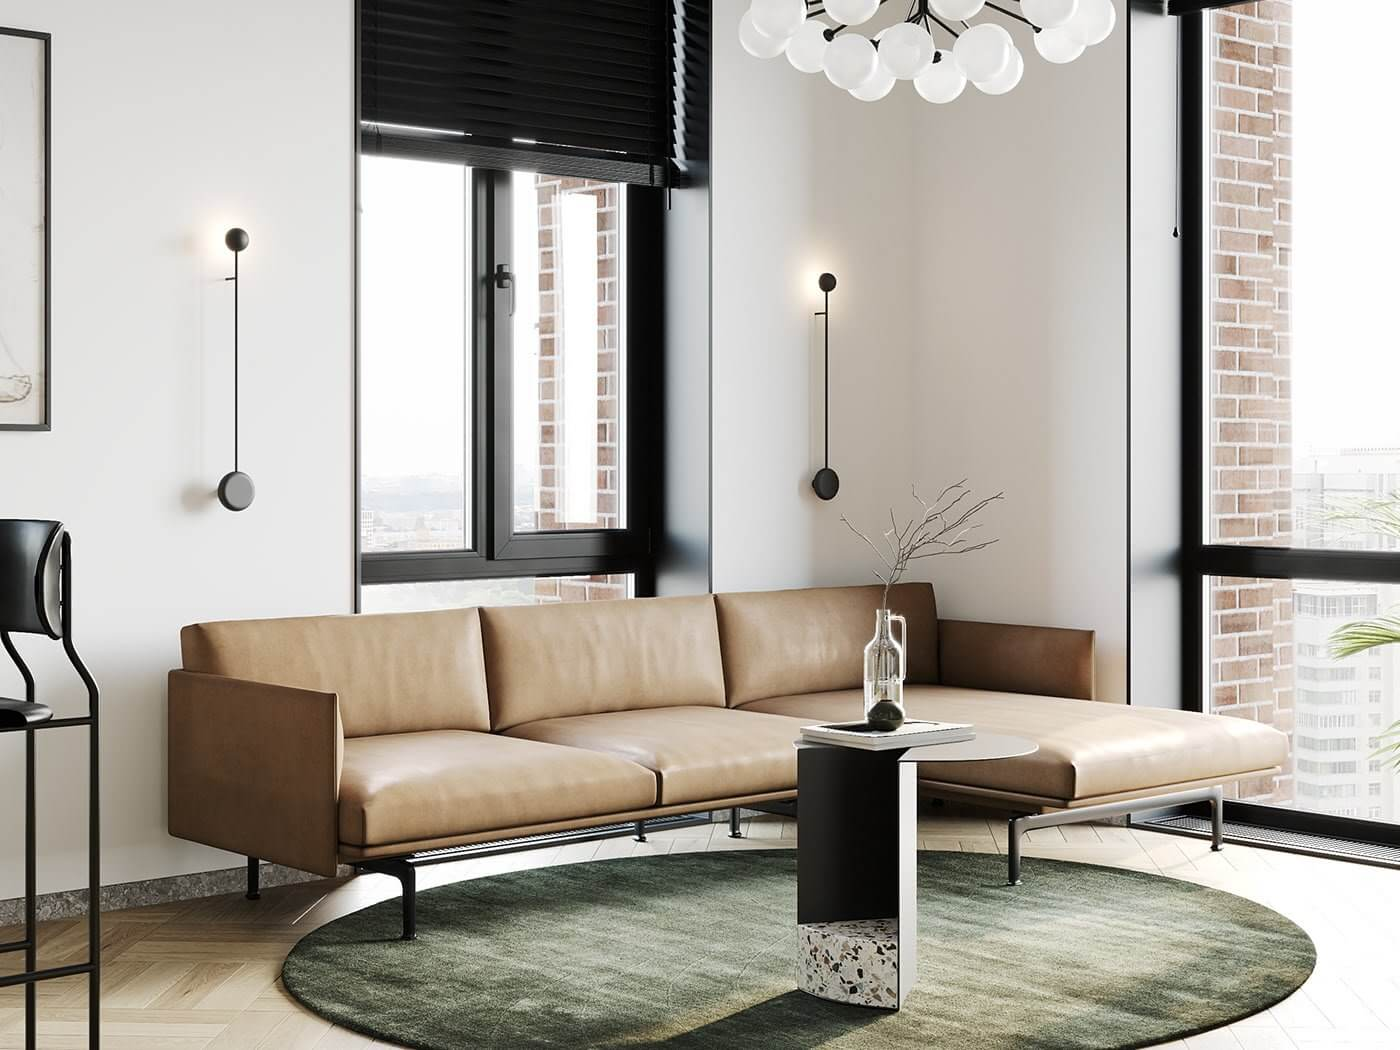 Apartment Presnya City Moscow living room leather couch - cgi visualization